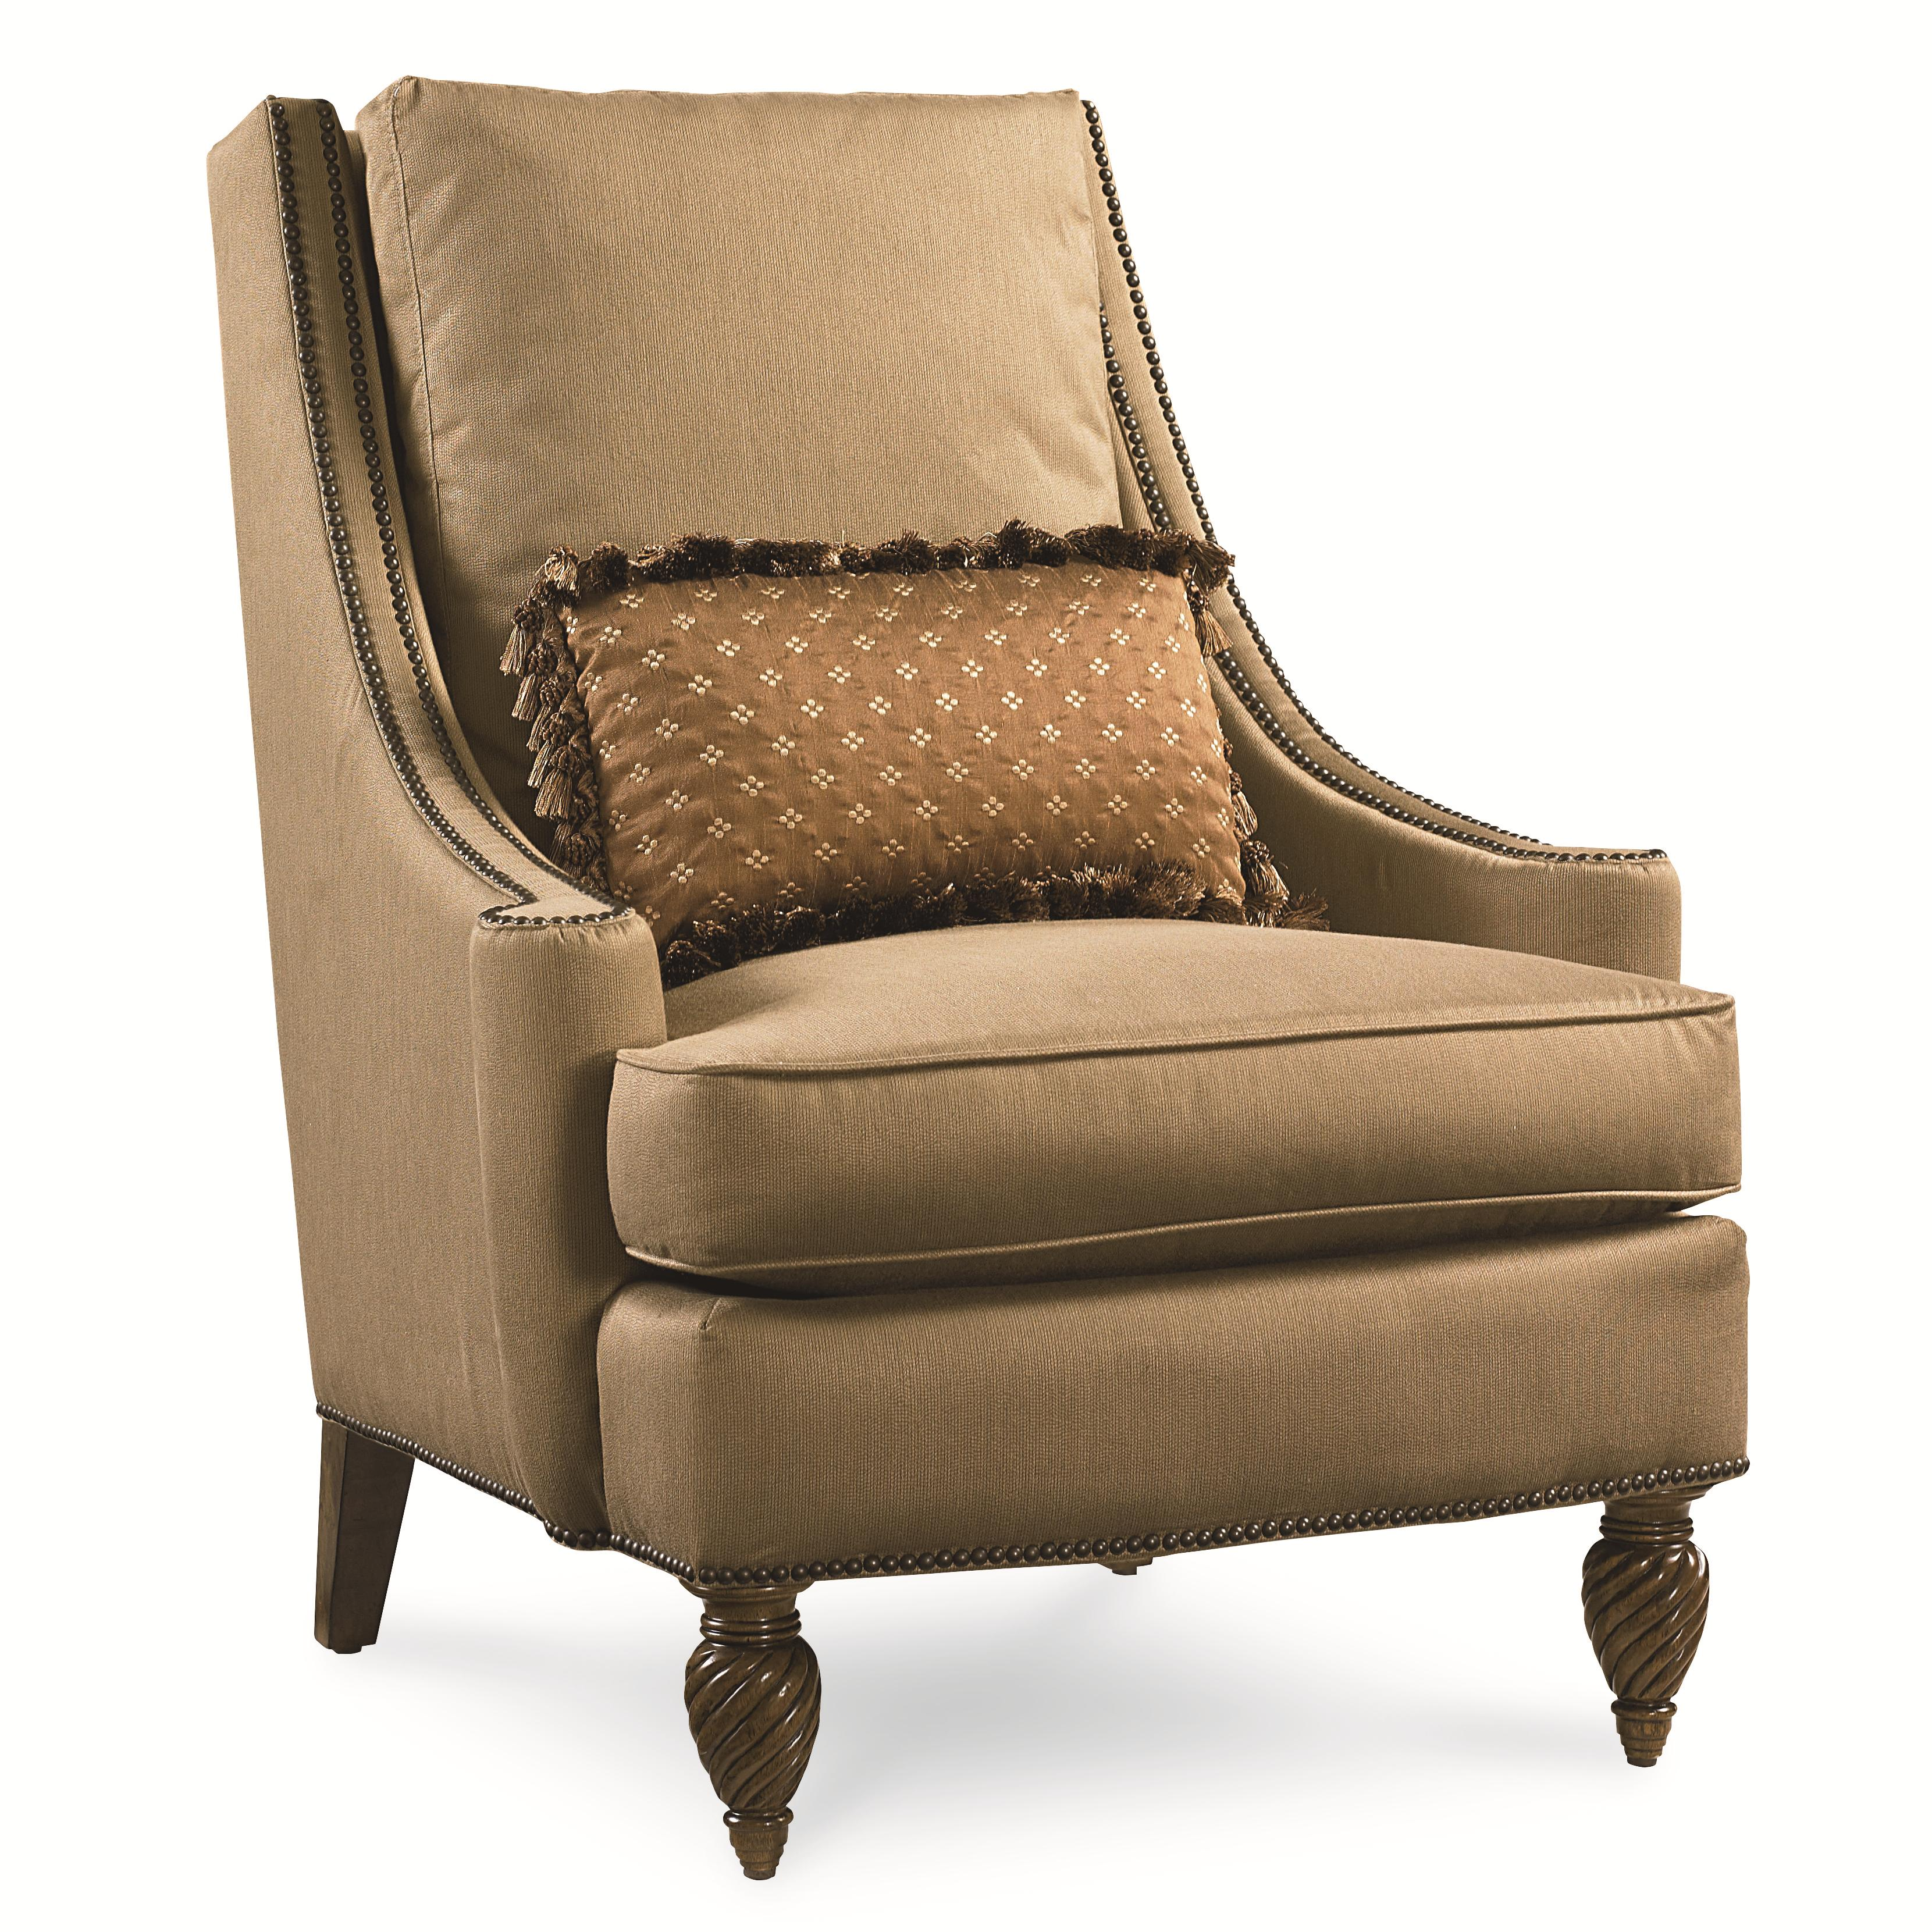 Legacy Classic Pemberleigh Accent Chair - Item Number: 3100-902